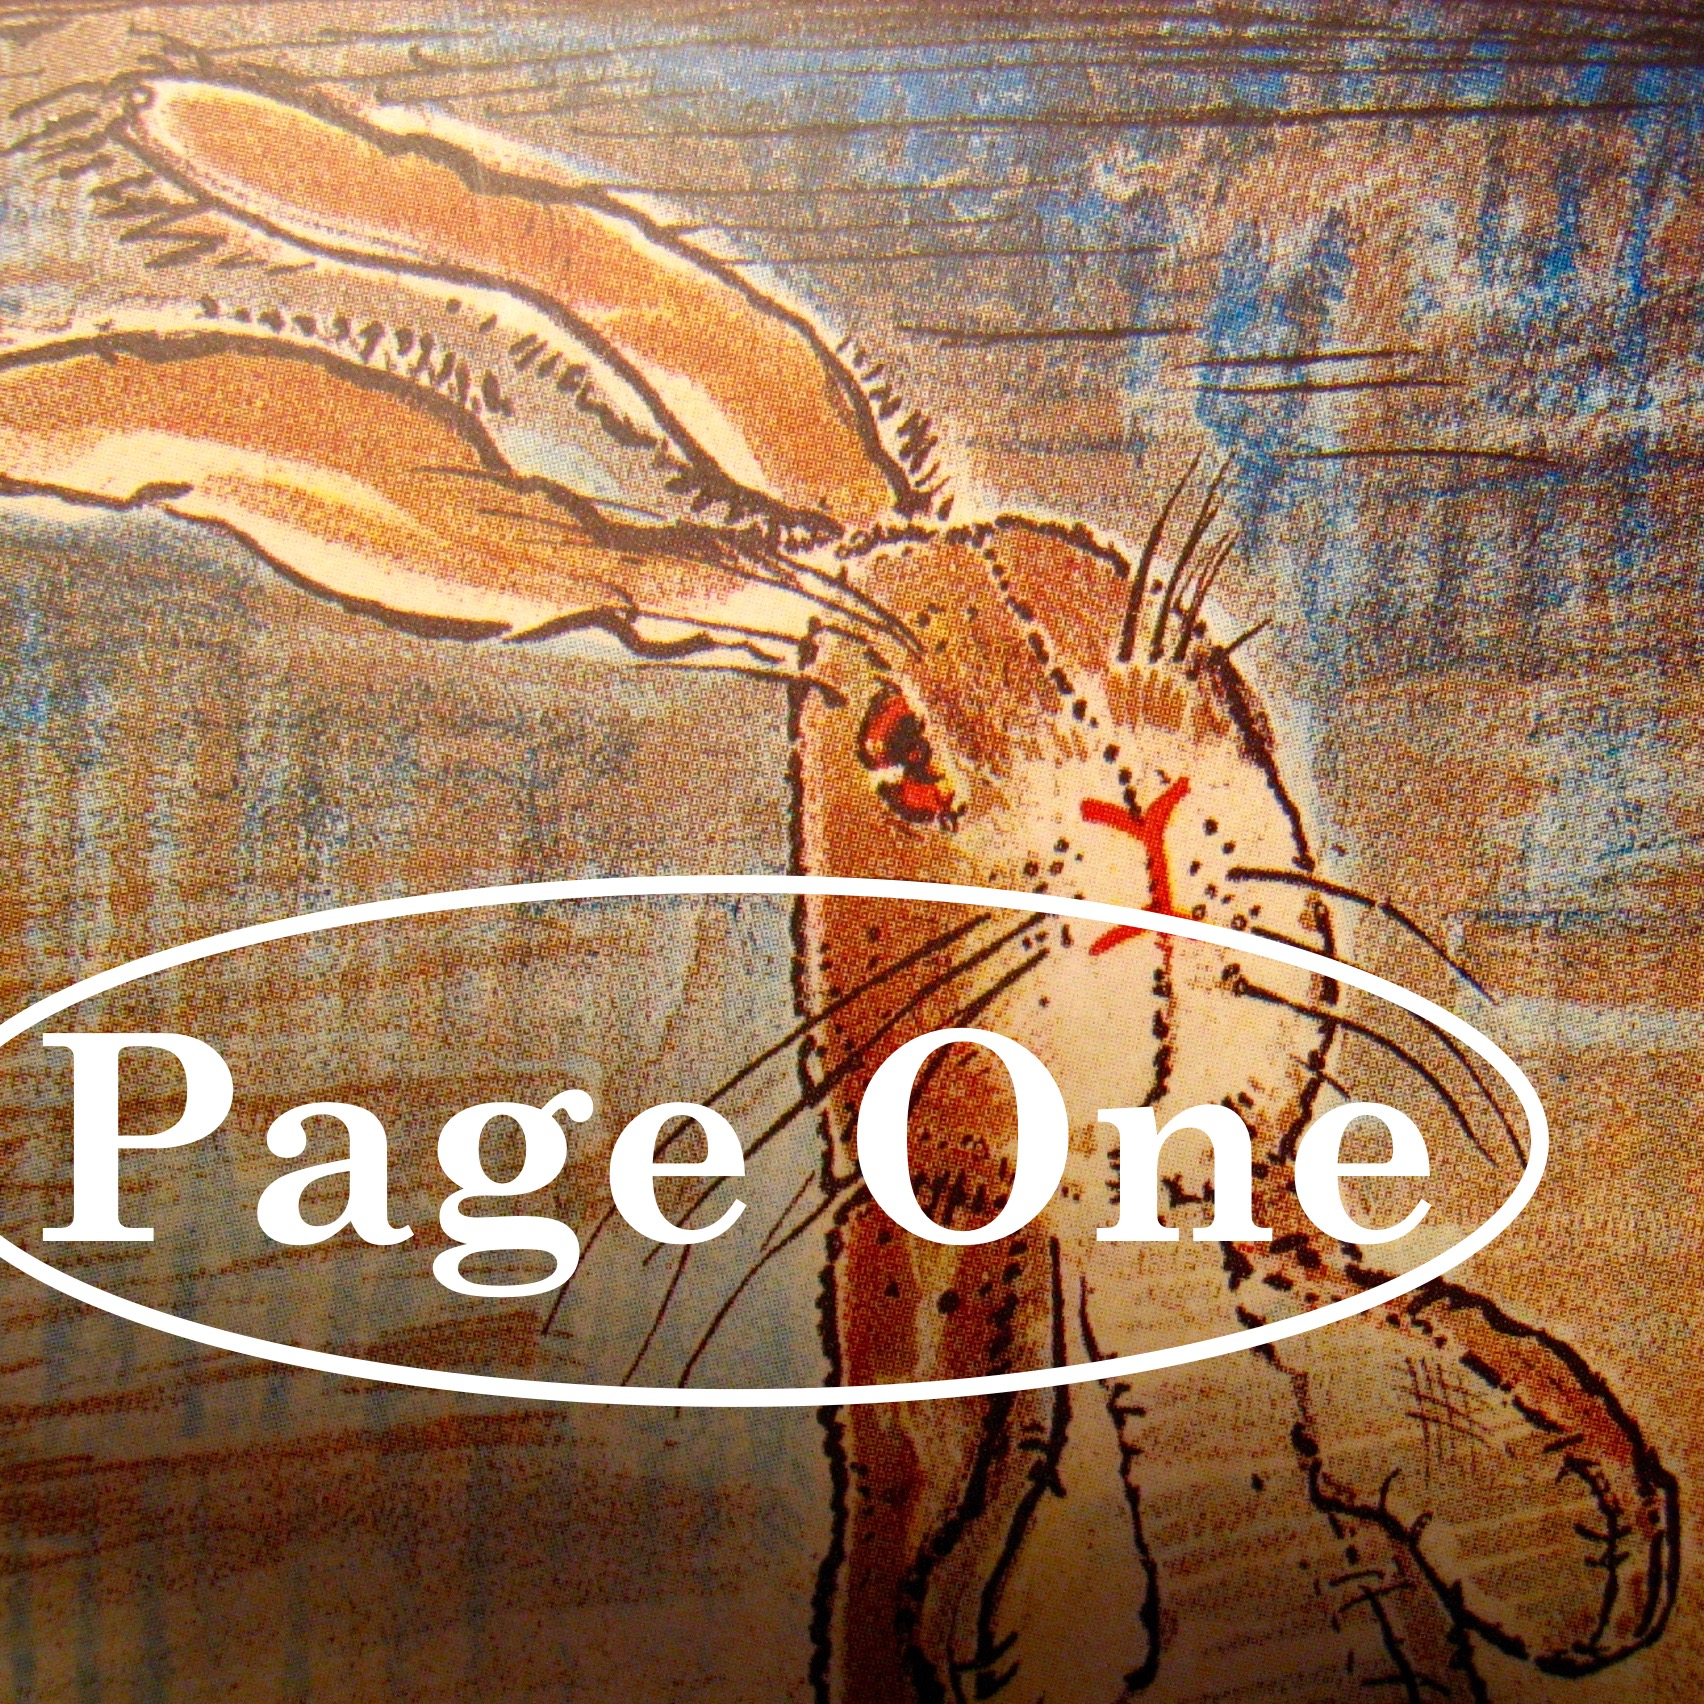 Episode image is a detail from the cover of The Original Velveteen Rabbit by Margery Williams, published by Egmont Press 2004; original art by William Nicholson.